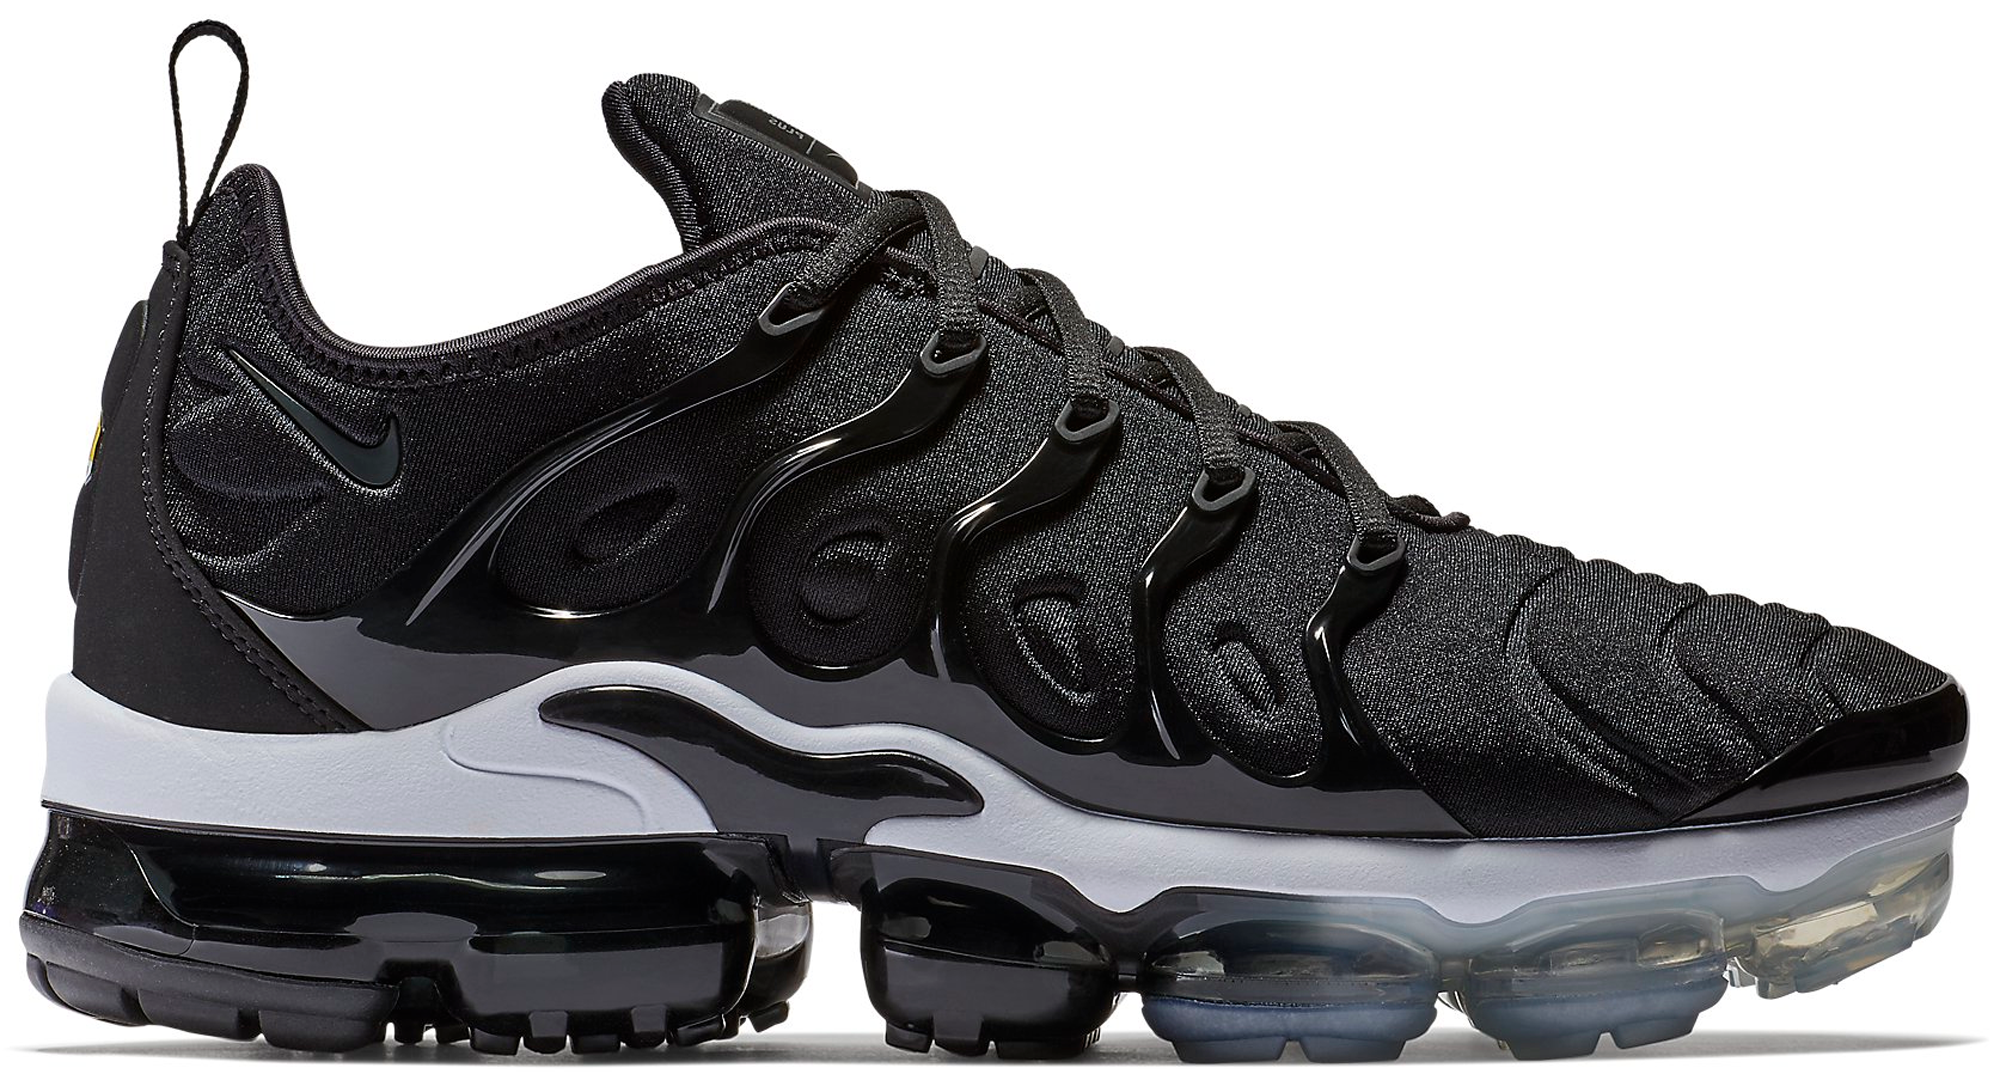 833fa9651bed4 inexpensive nike air vapormax plus mens shoe 2a143 db920  usa air vapormax  plus black white 34f7c e8b0e